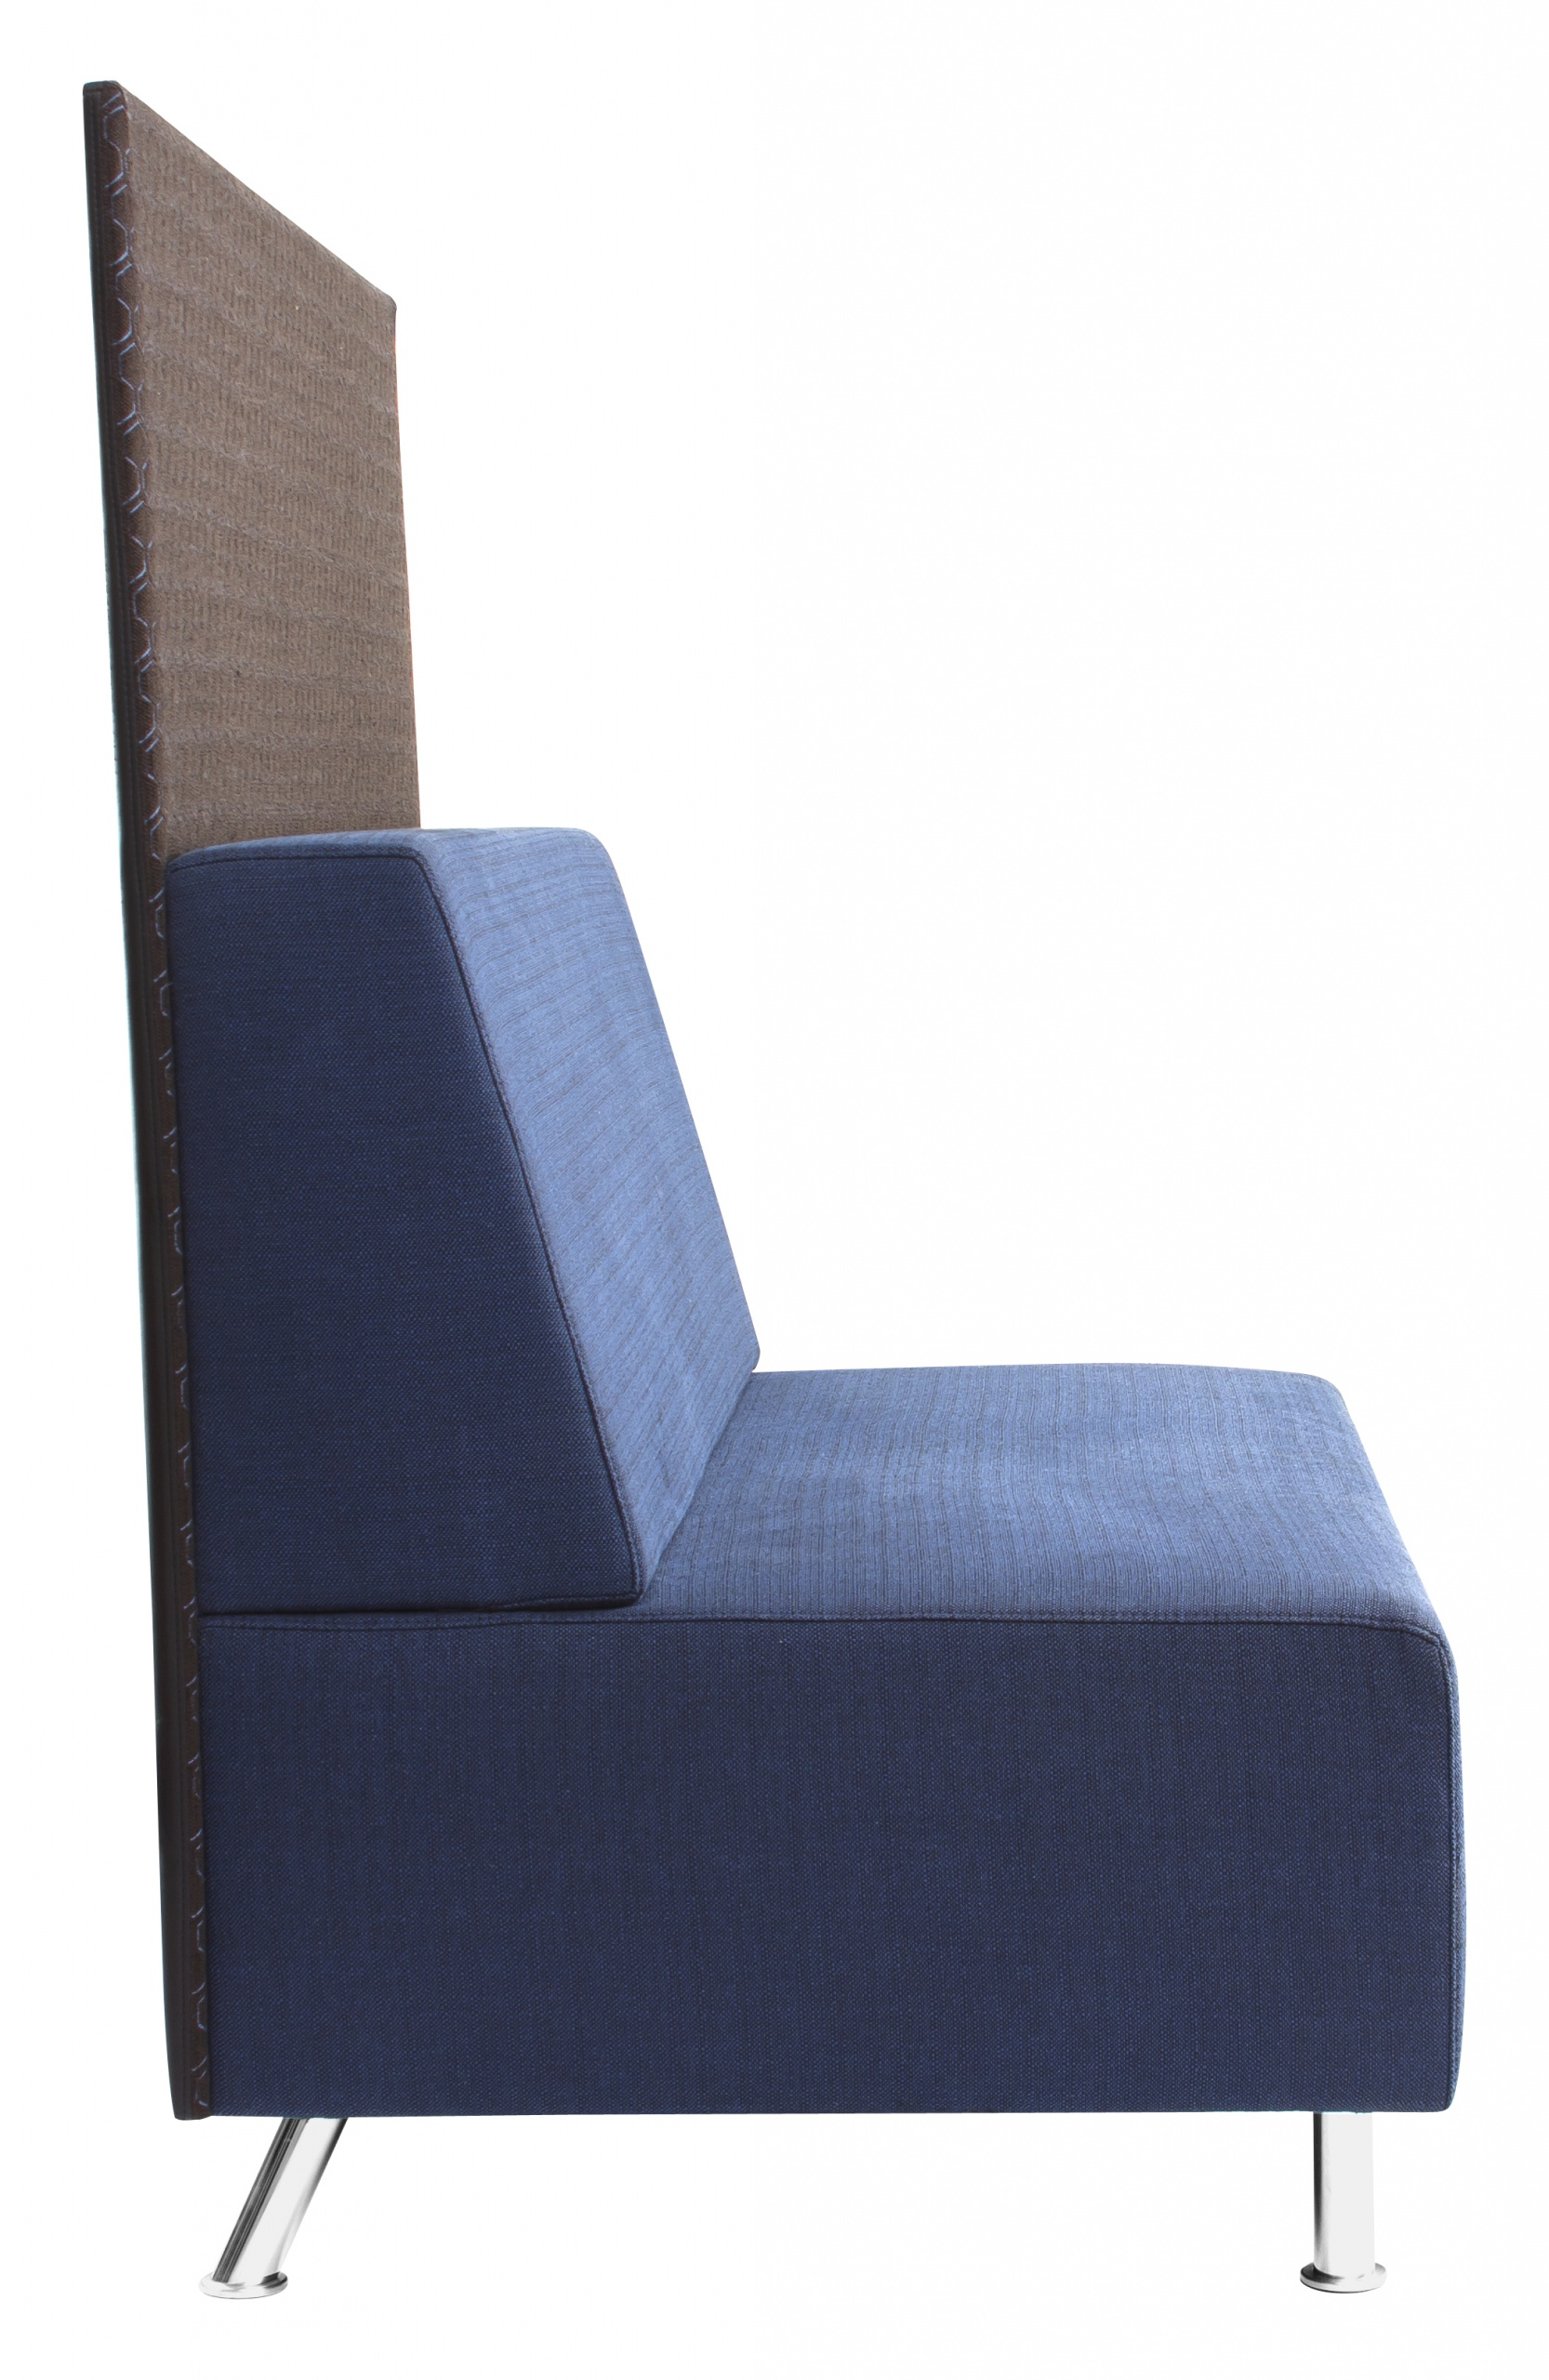 5 Seat Corner Sofa Images Blue Tufted Ottoman It Is